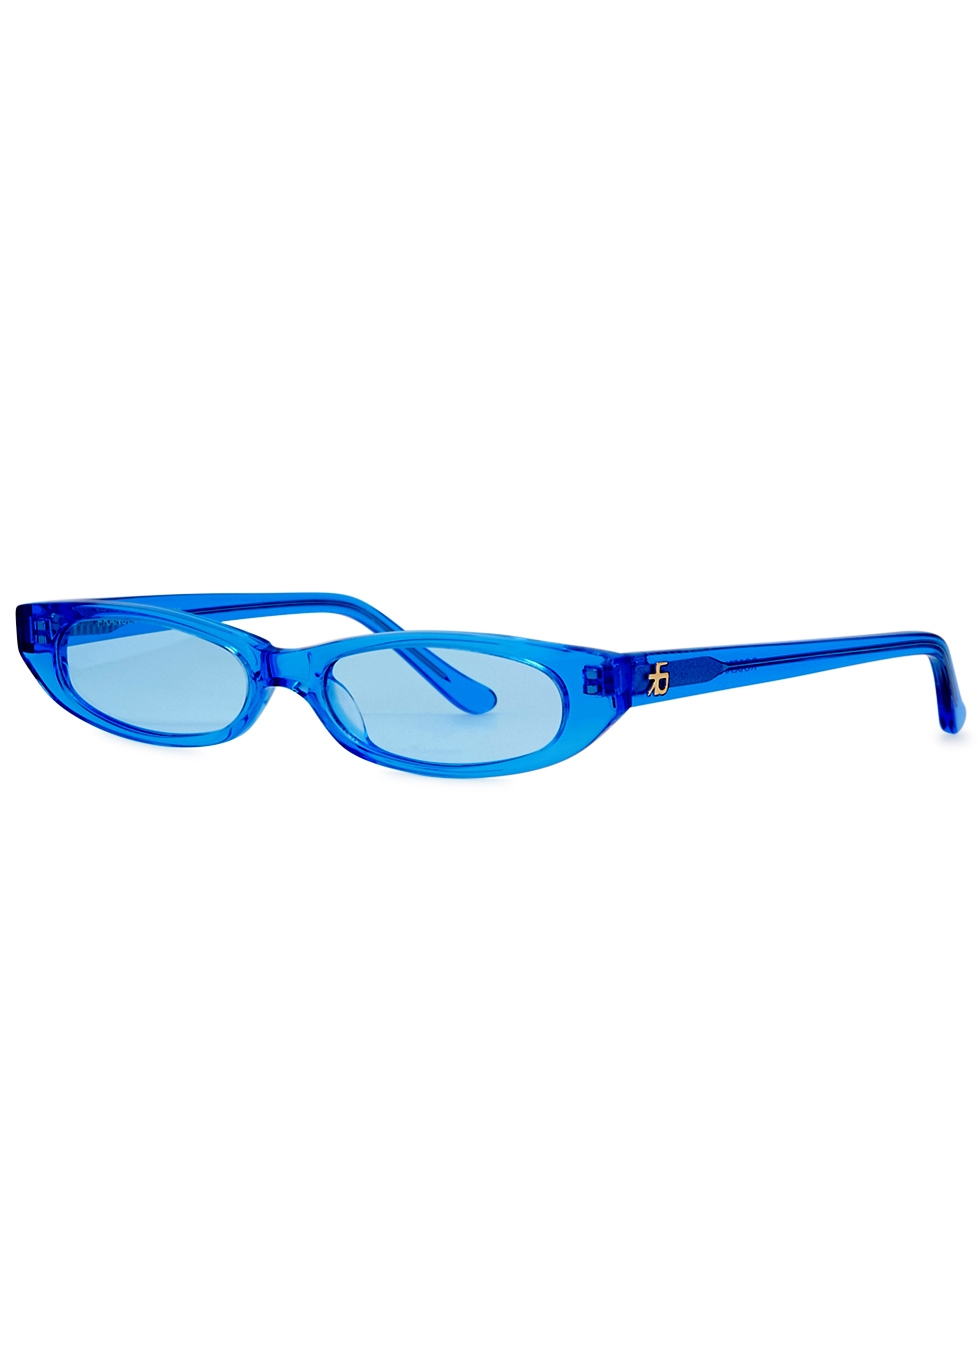 ROBERI AND FRAUD Frances Oval-Frame Sunglasses in Blue